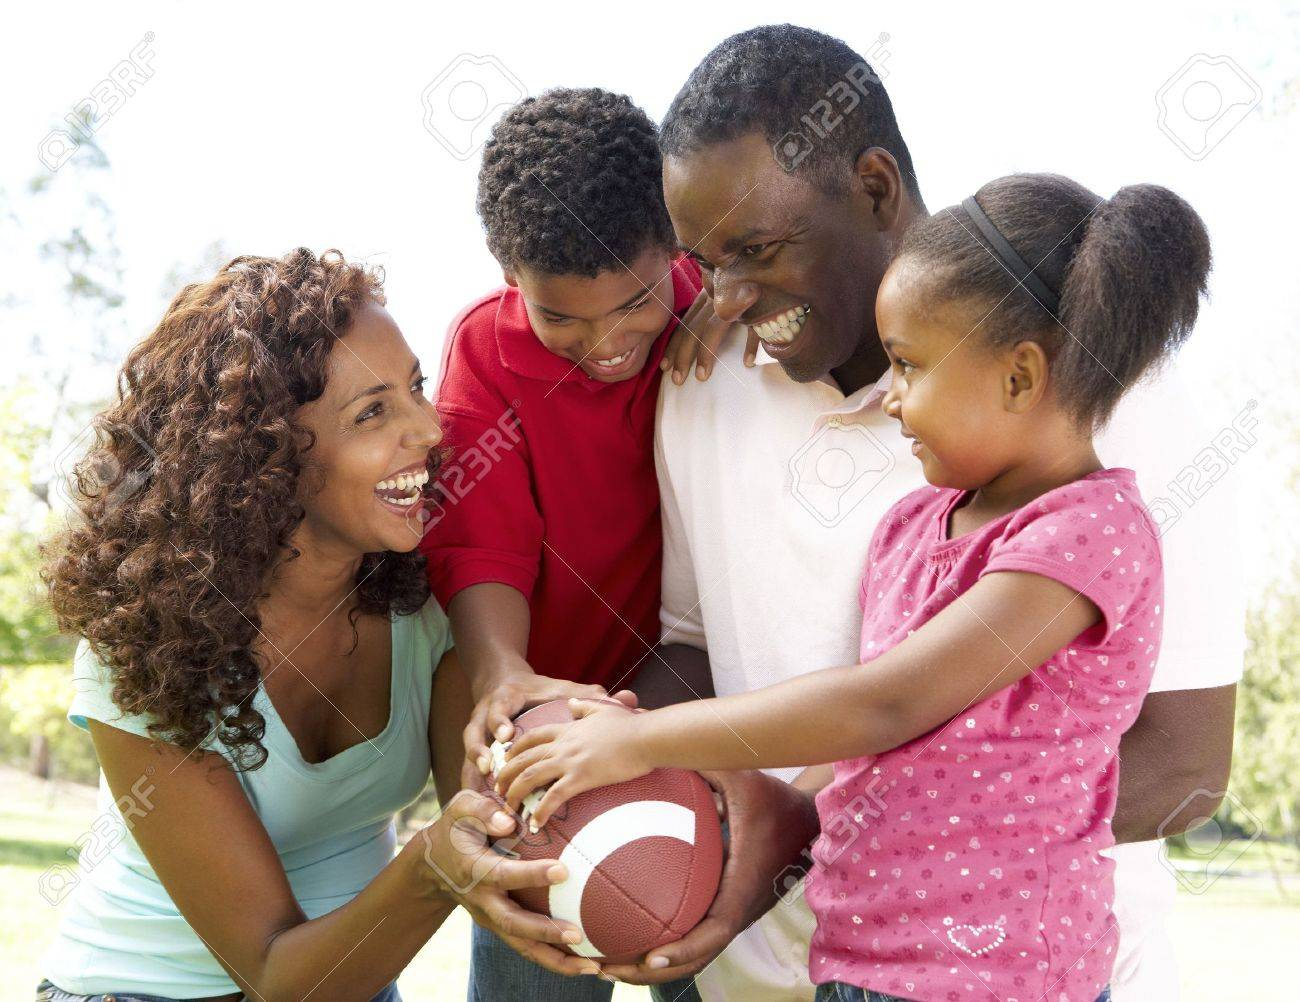 Family In Park With American Football Stock Photo - 6456300